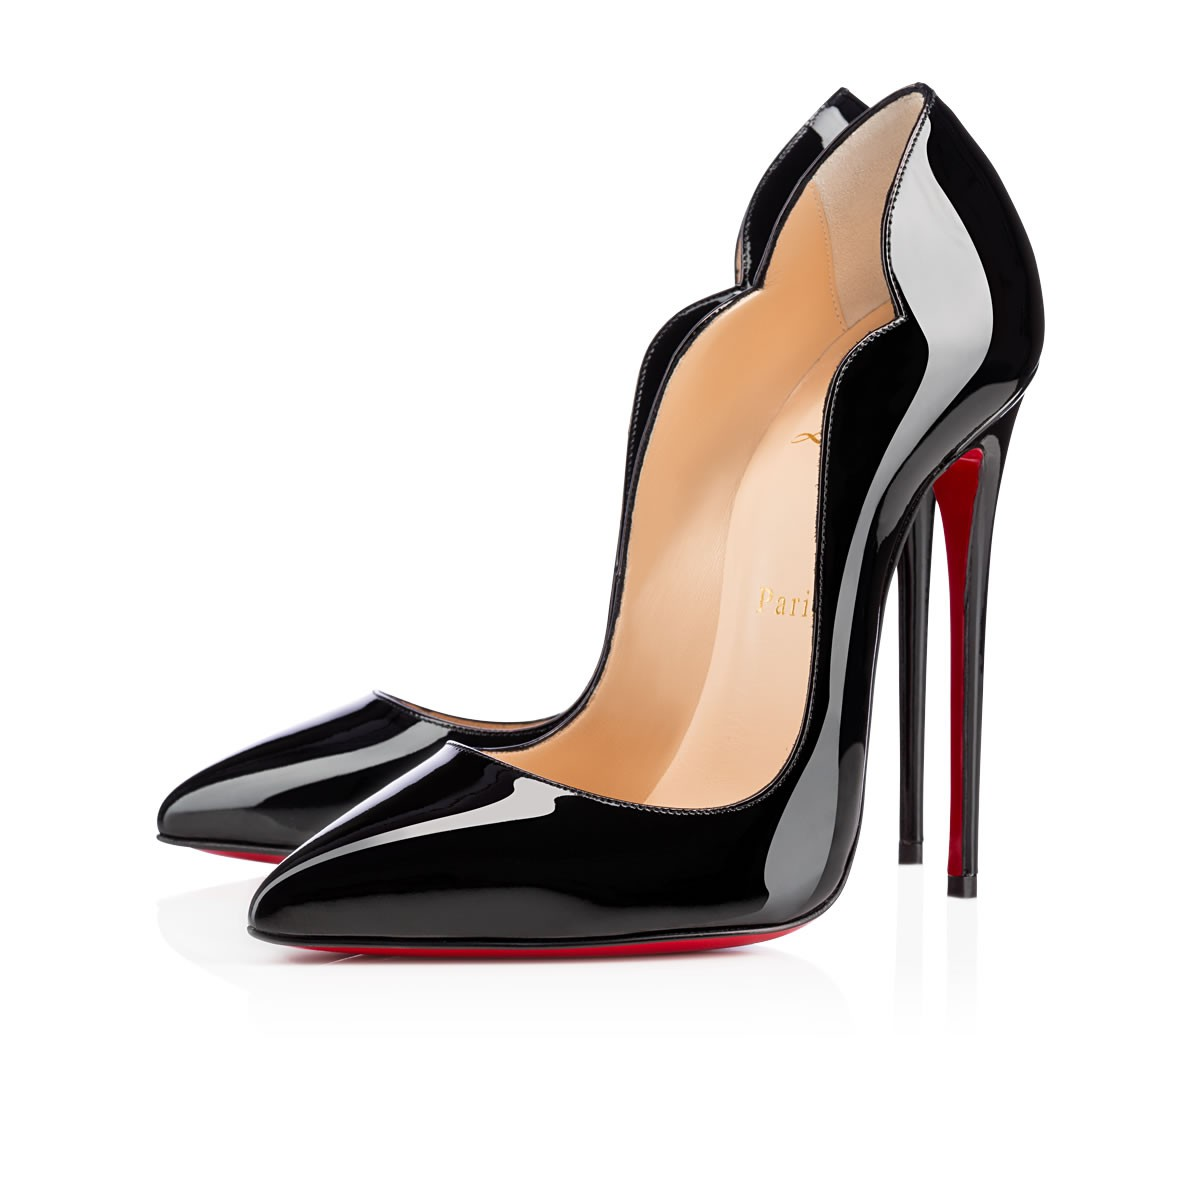 9801ef1966f1 Hot Chick 130 Black Patent Leather - Women Shoes - Christian Louboutin